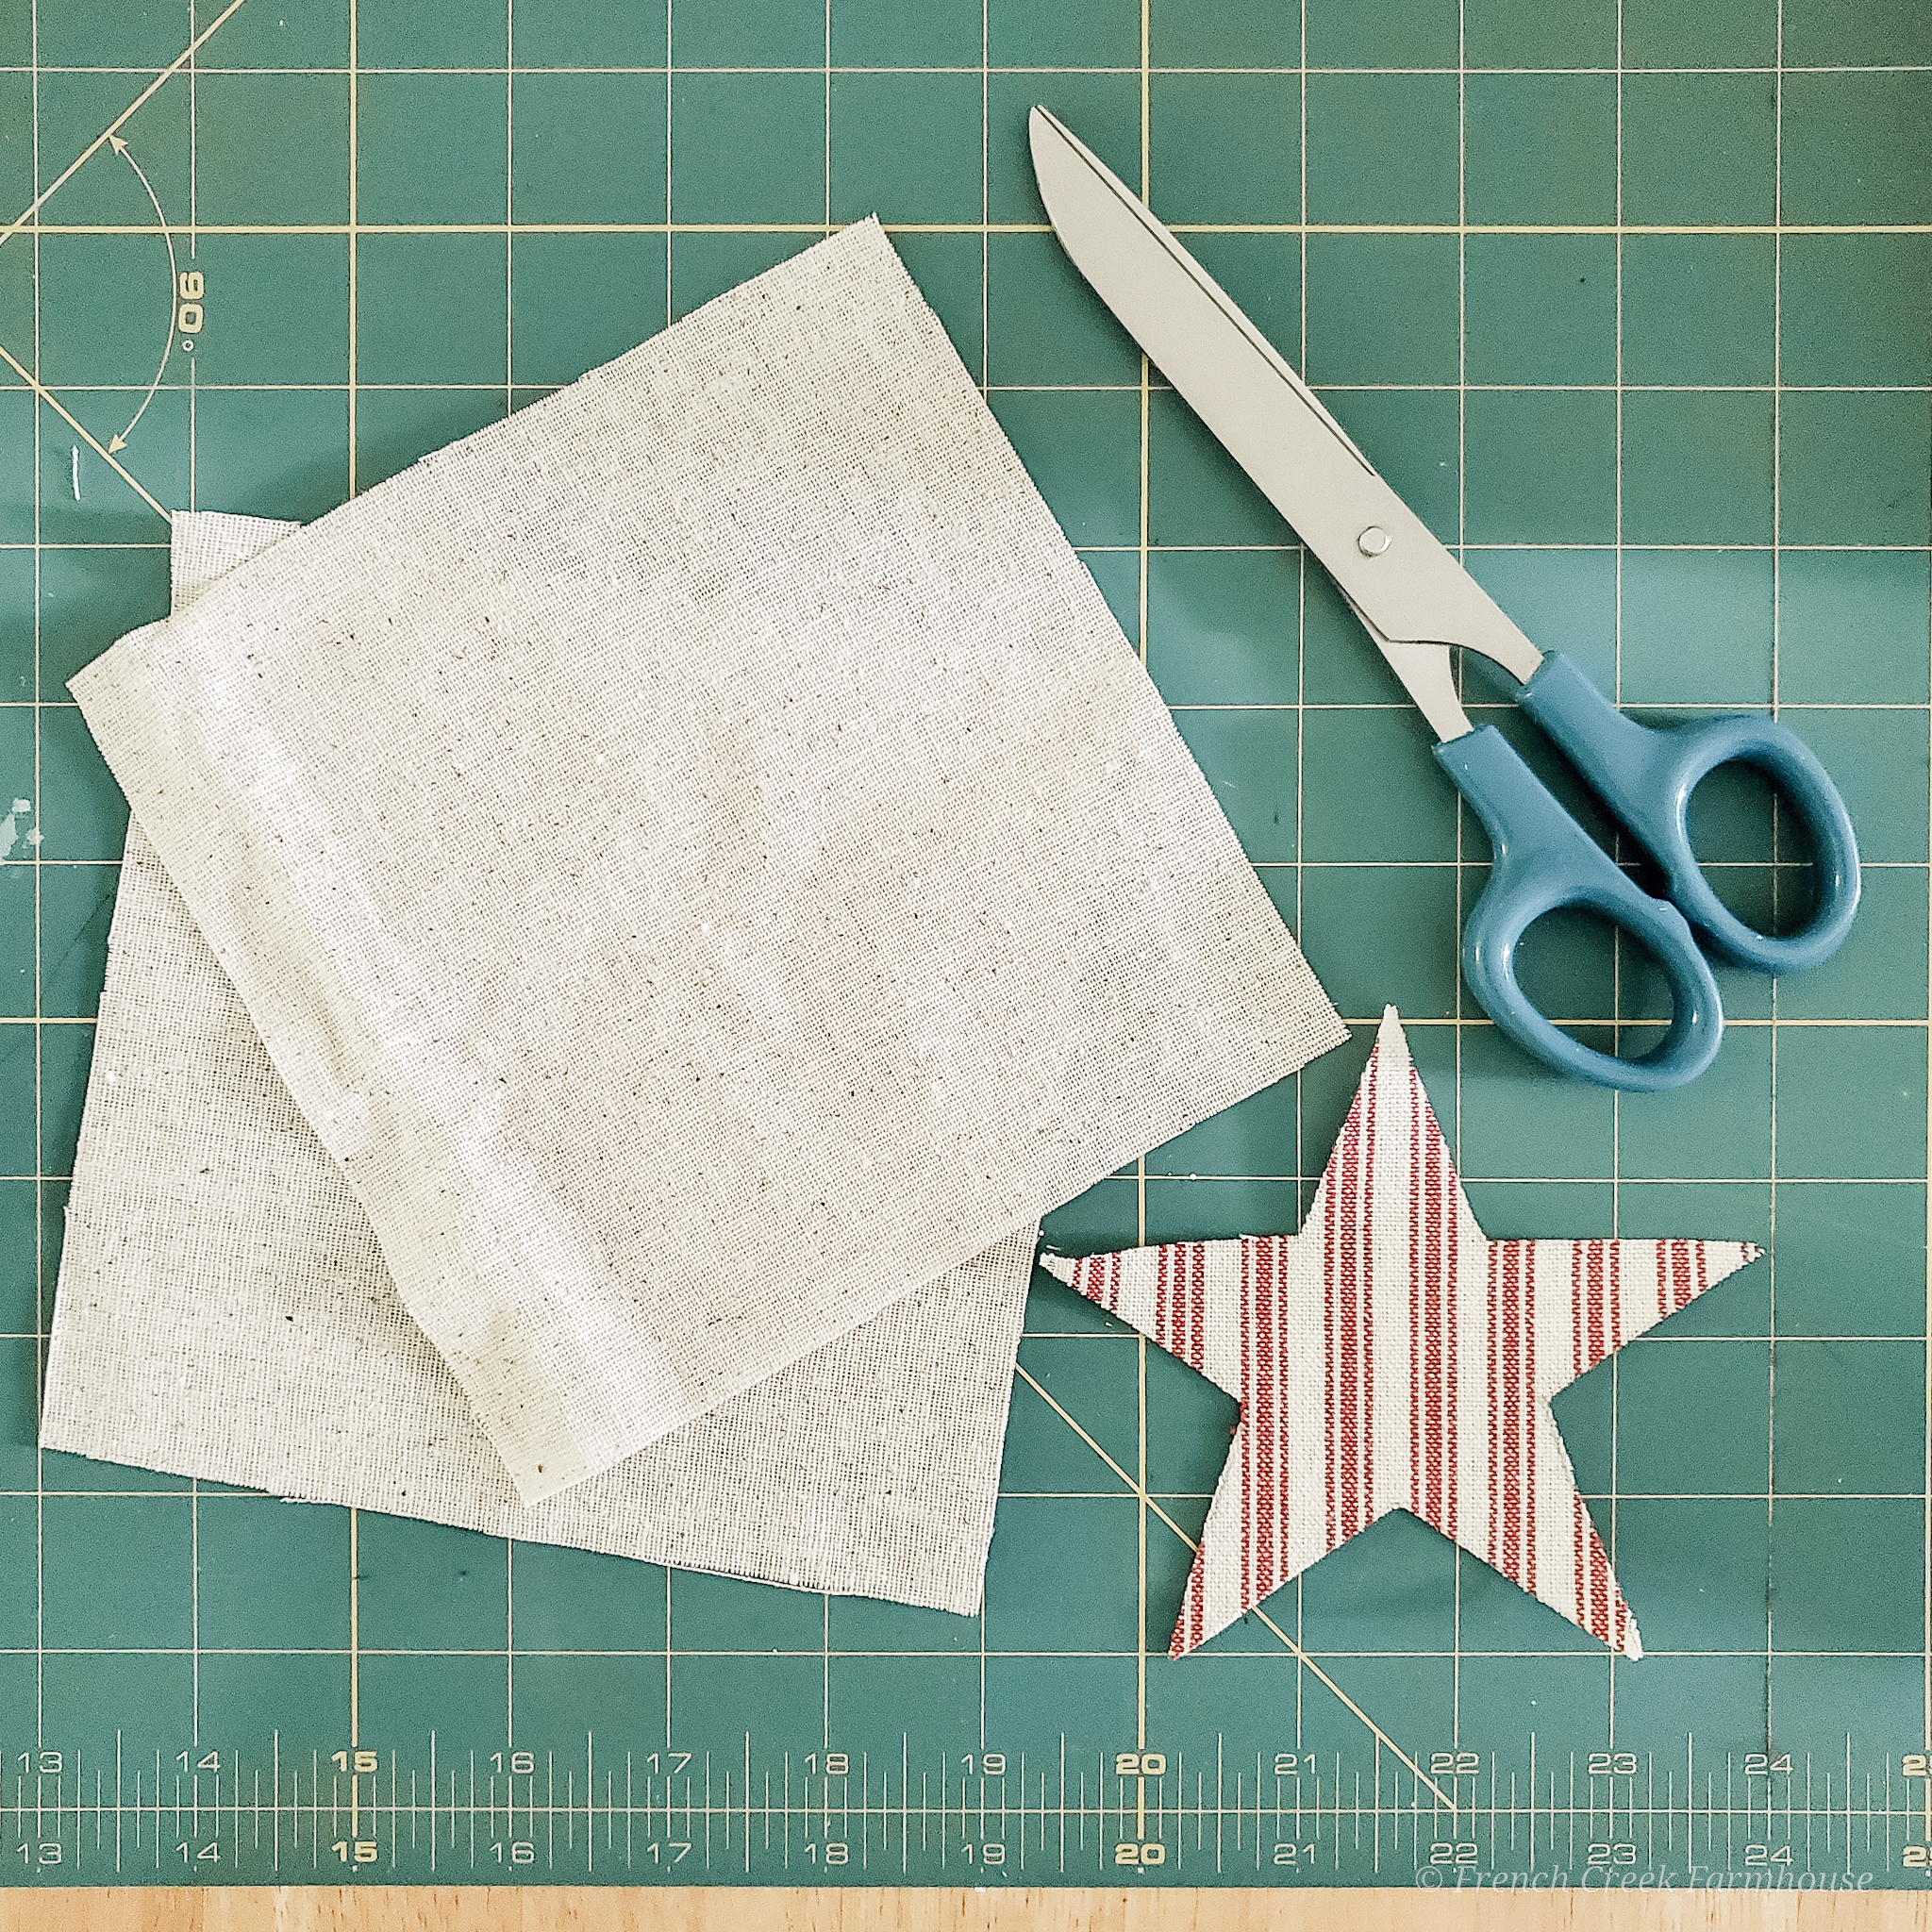 Step 3: Cut out fabric pieces